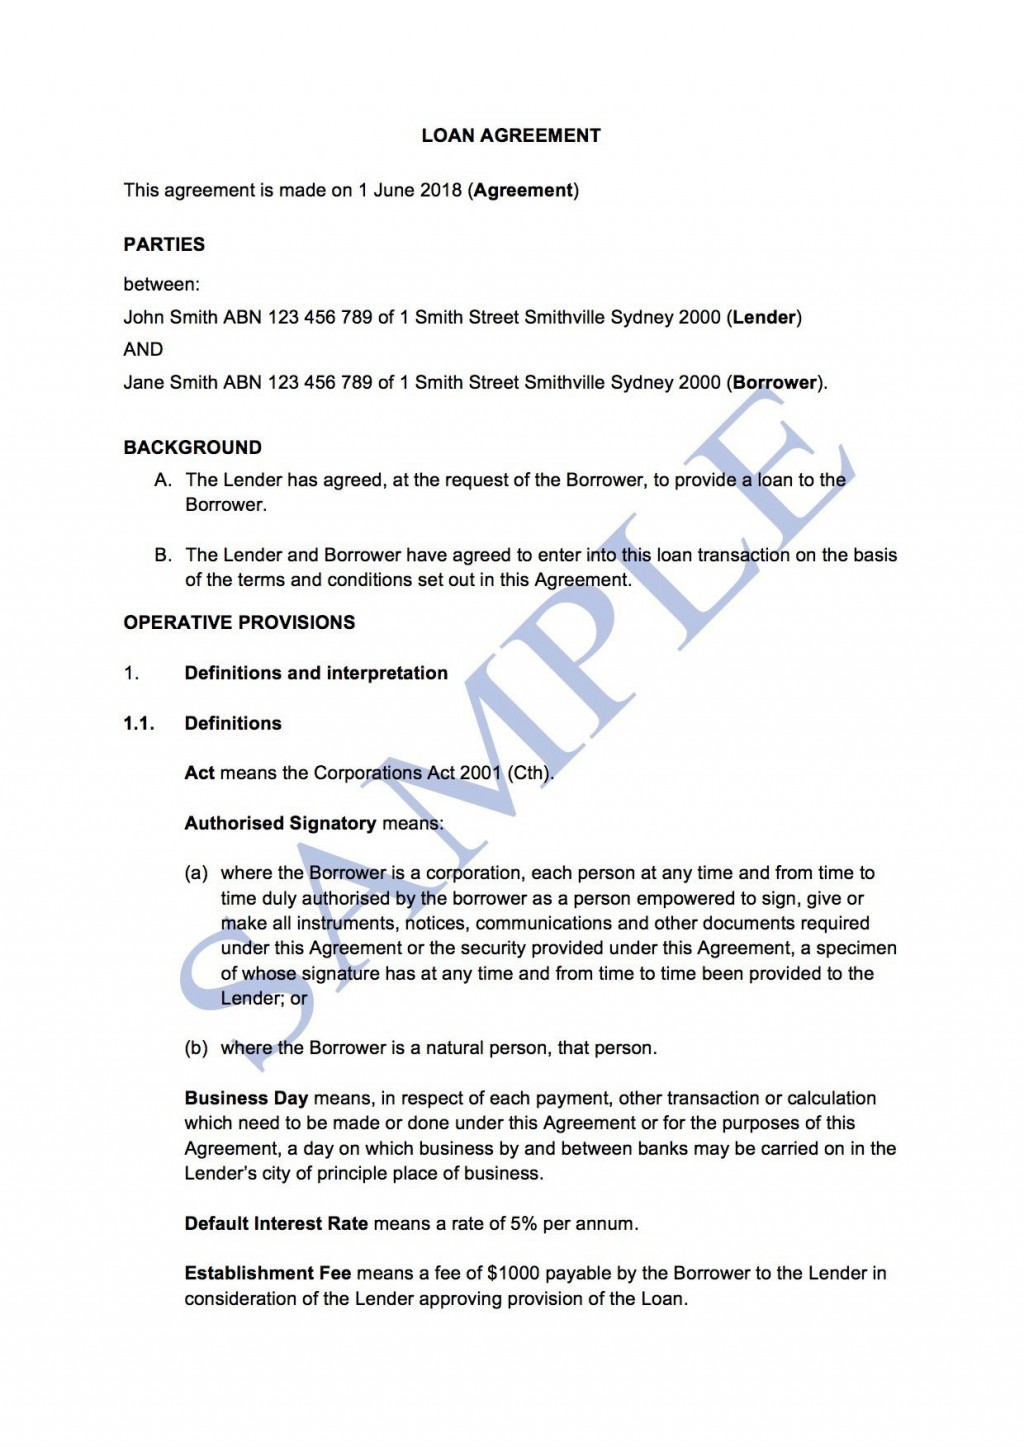 007 Simple Family Loan Agreement Template Australia Highest Clarity Large